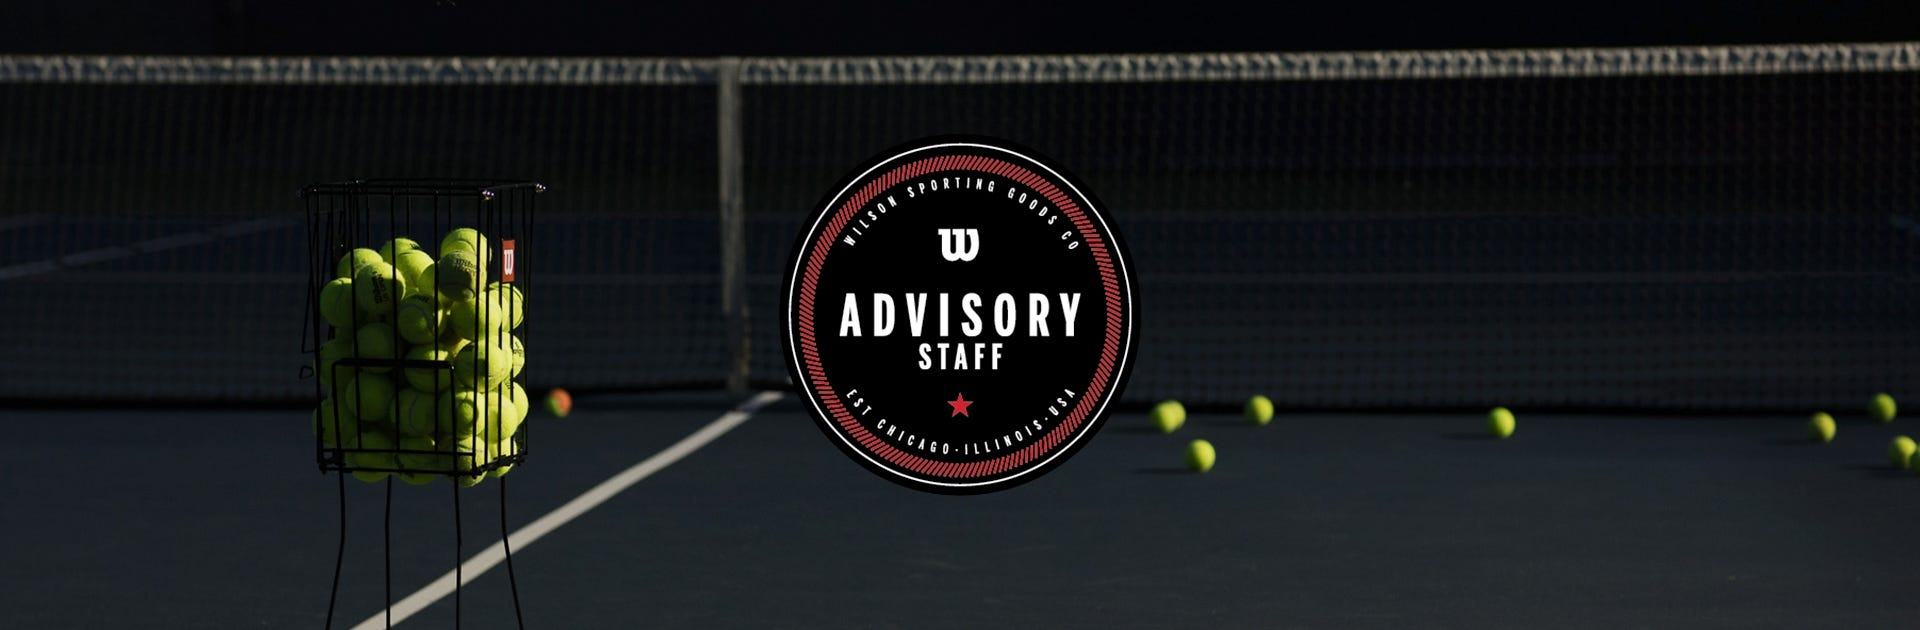 Wilson Tennis Advisory Staff